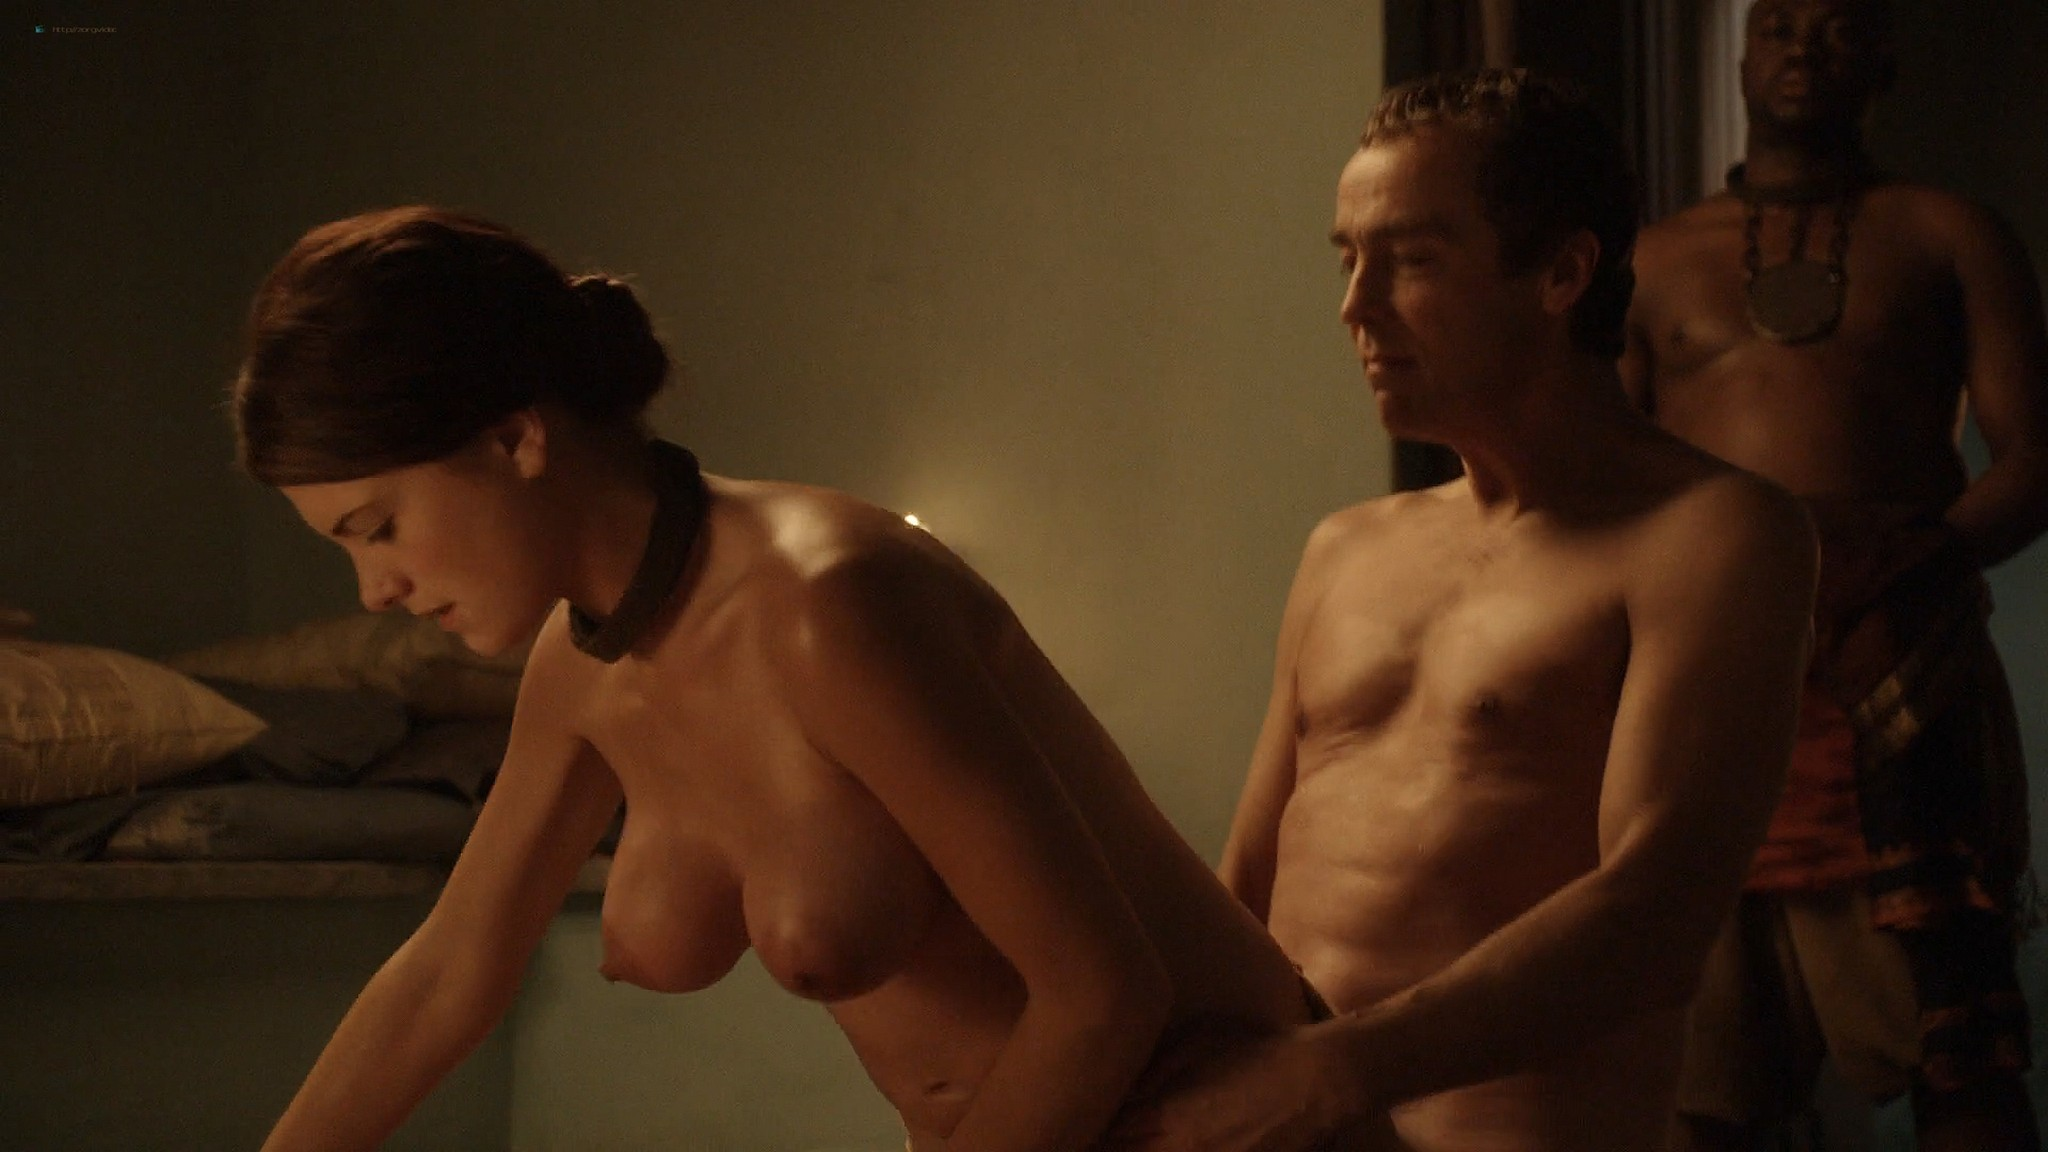 Lucy Lawless nude Lesley-Ann Brandt and other nude sex too - Spartacus (2010) Delicate Things s1e6 HD 1080p BluRay (12)